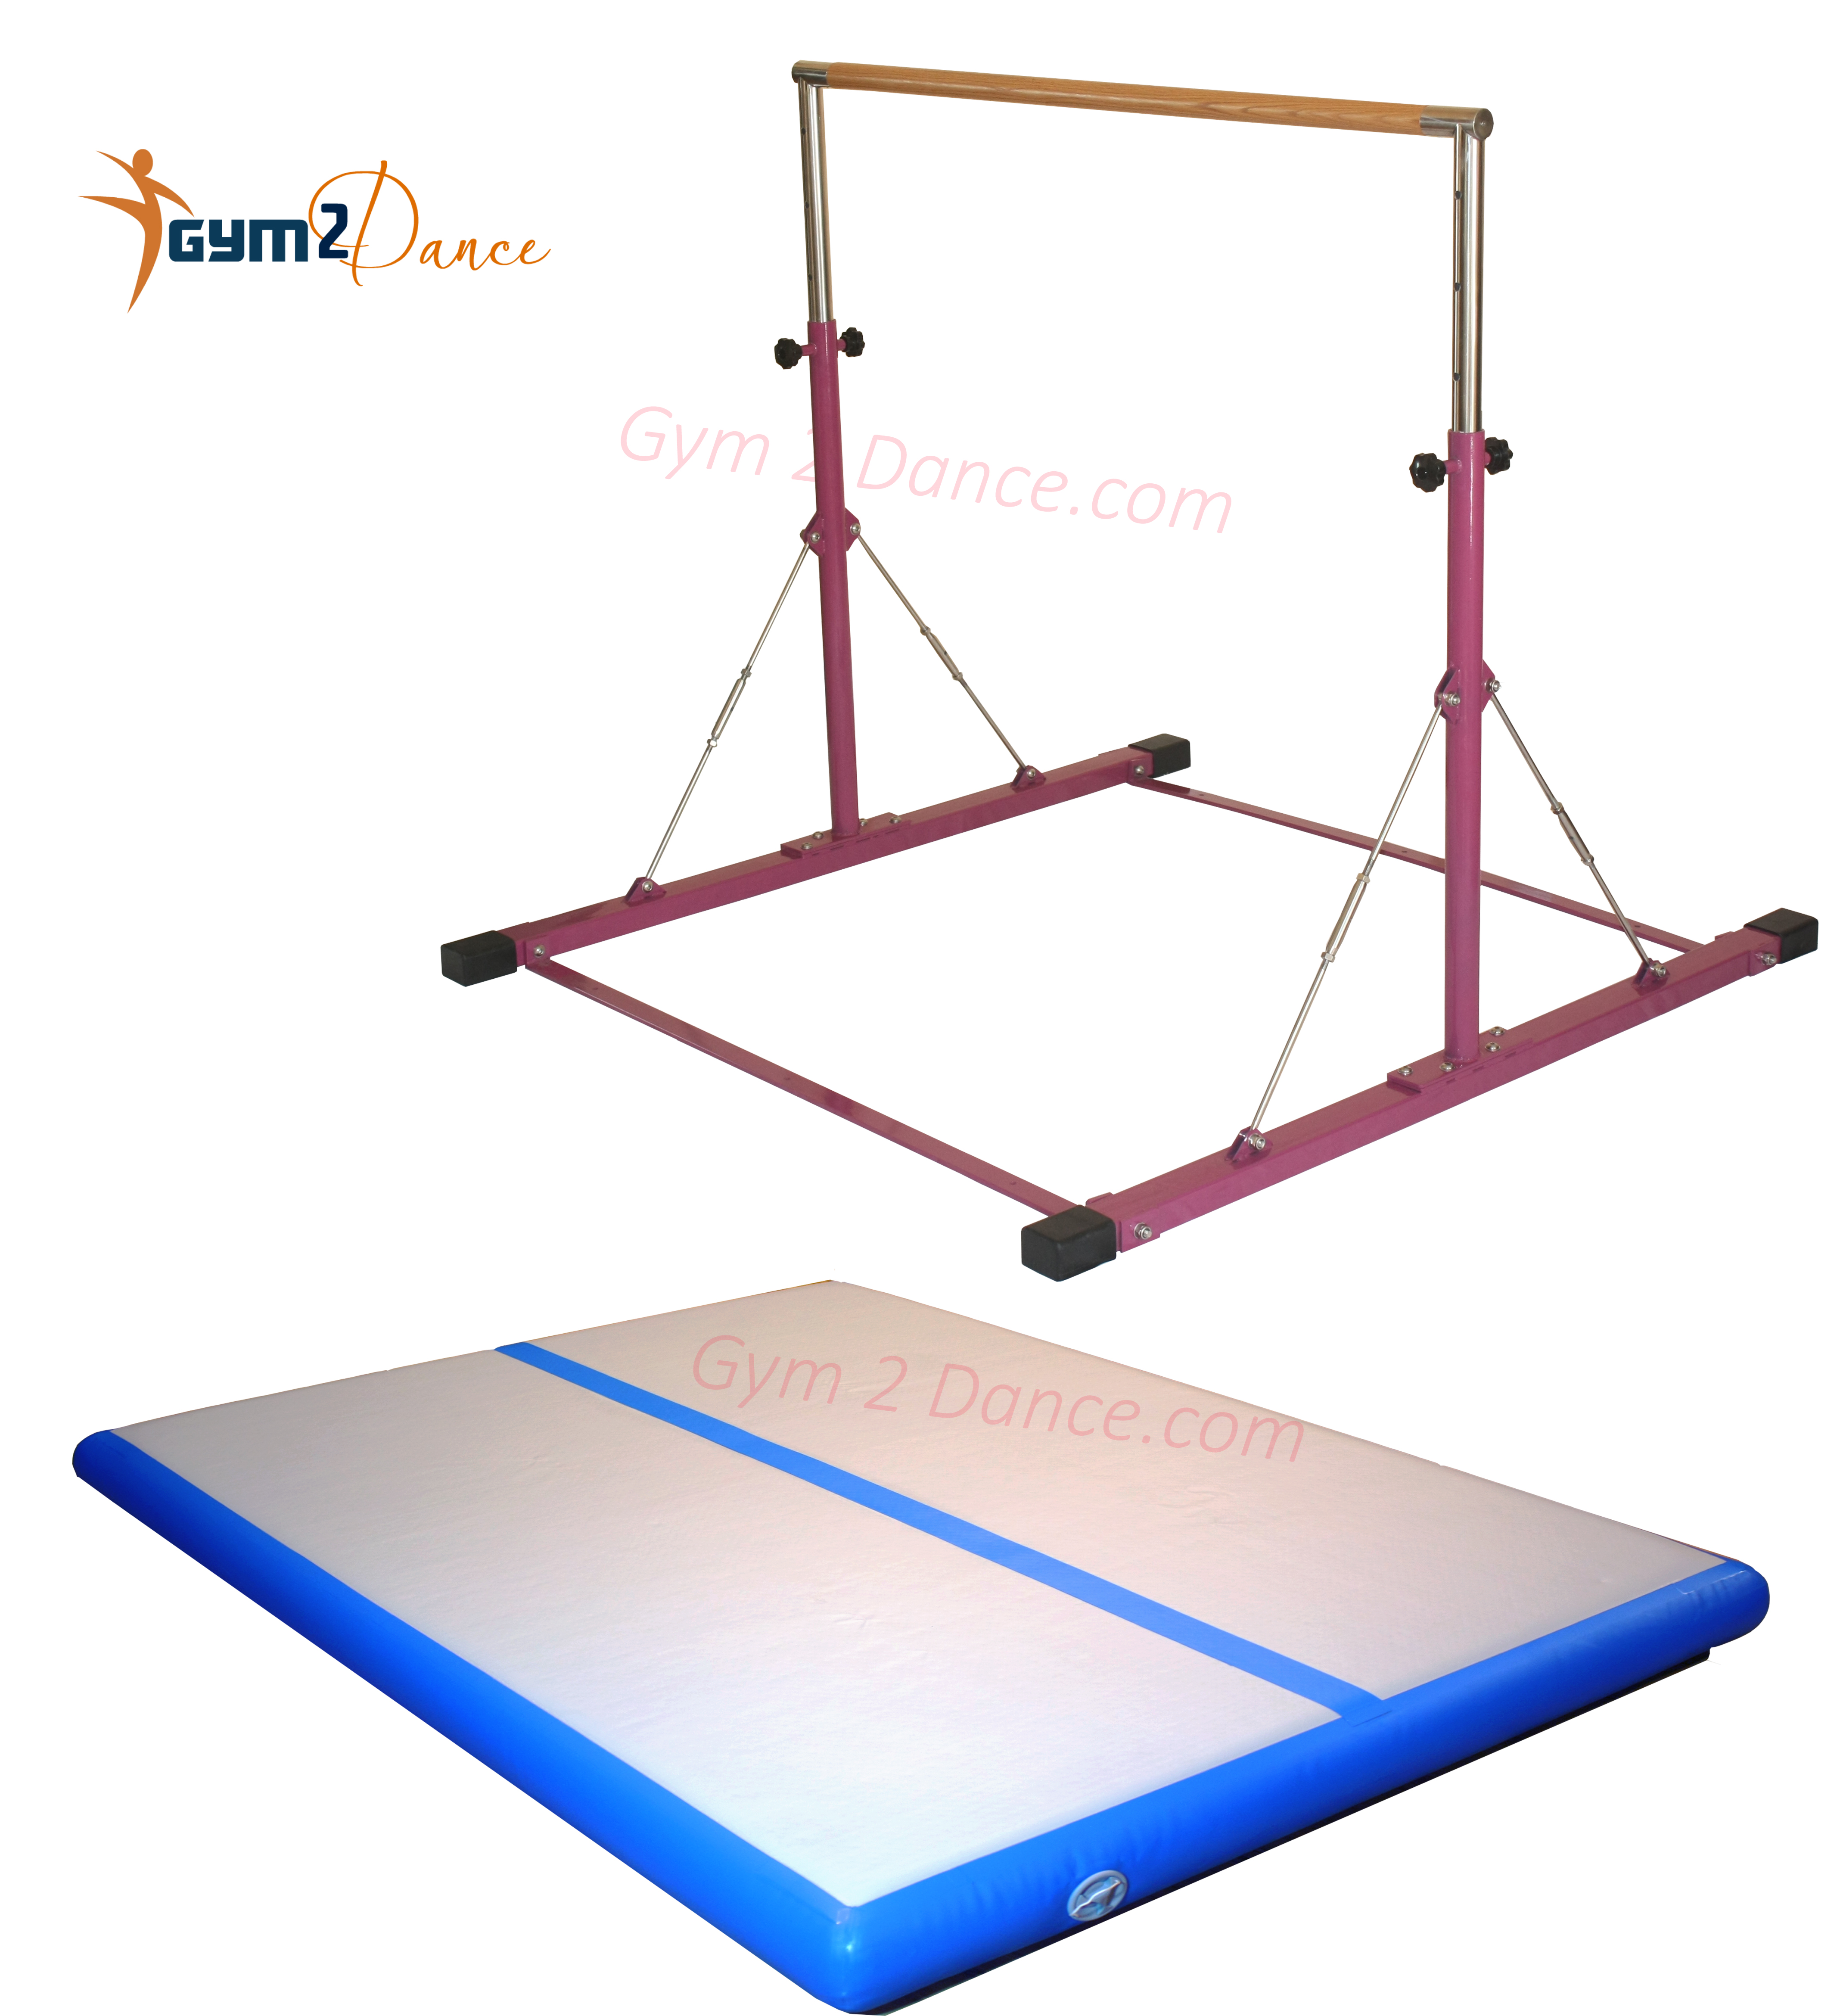 supplier this in gymnastics are gymnastic buy mats fine the materials made specially delhi quality it raw is for used qual pin awesome